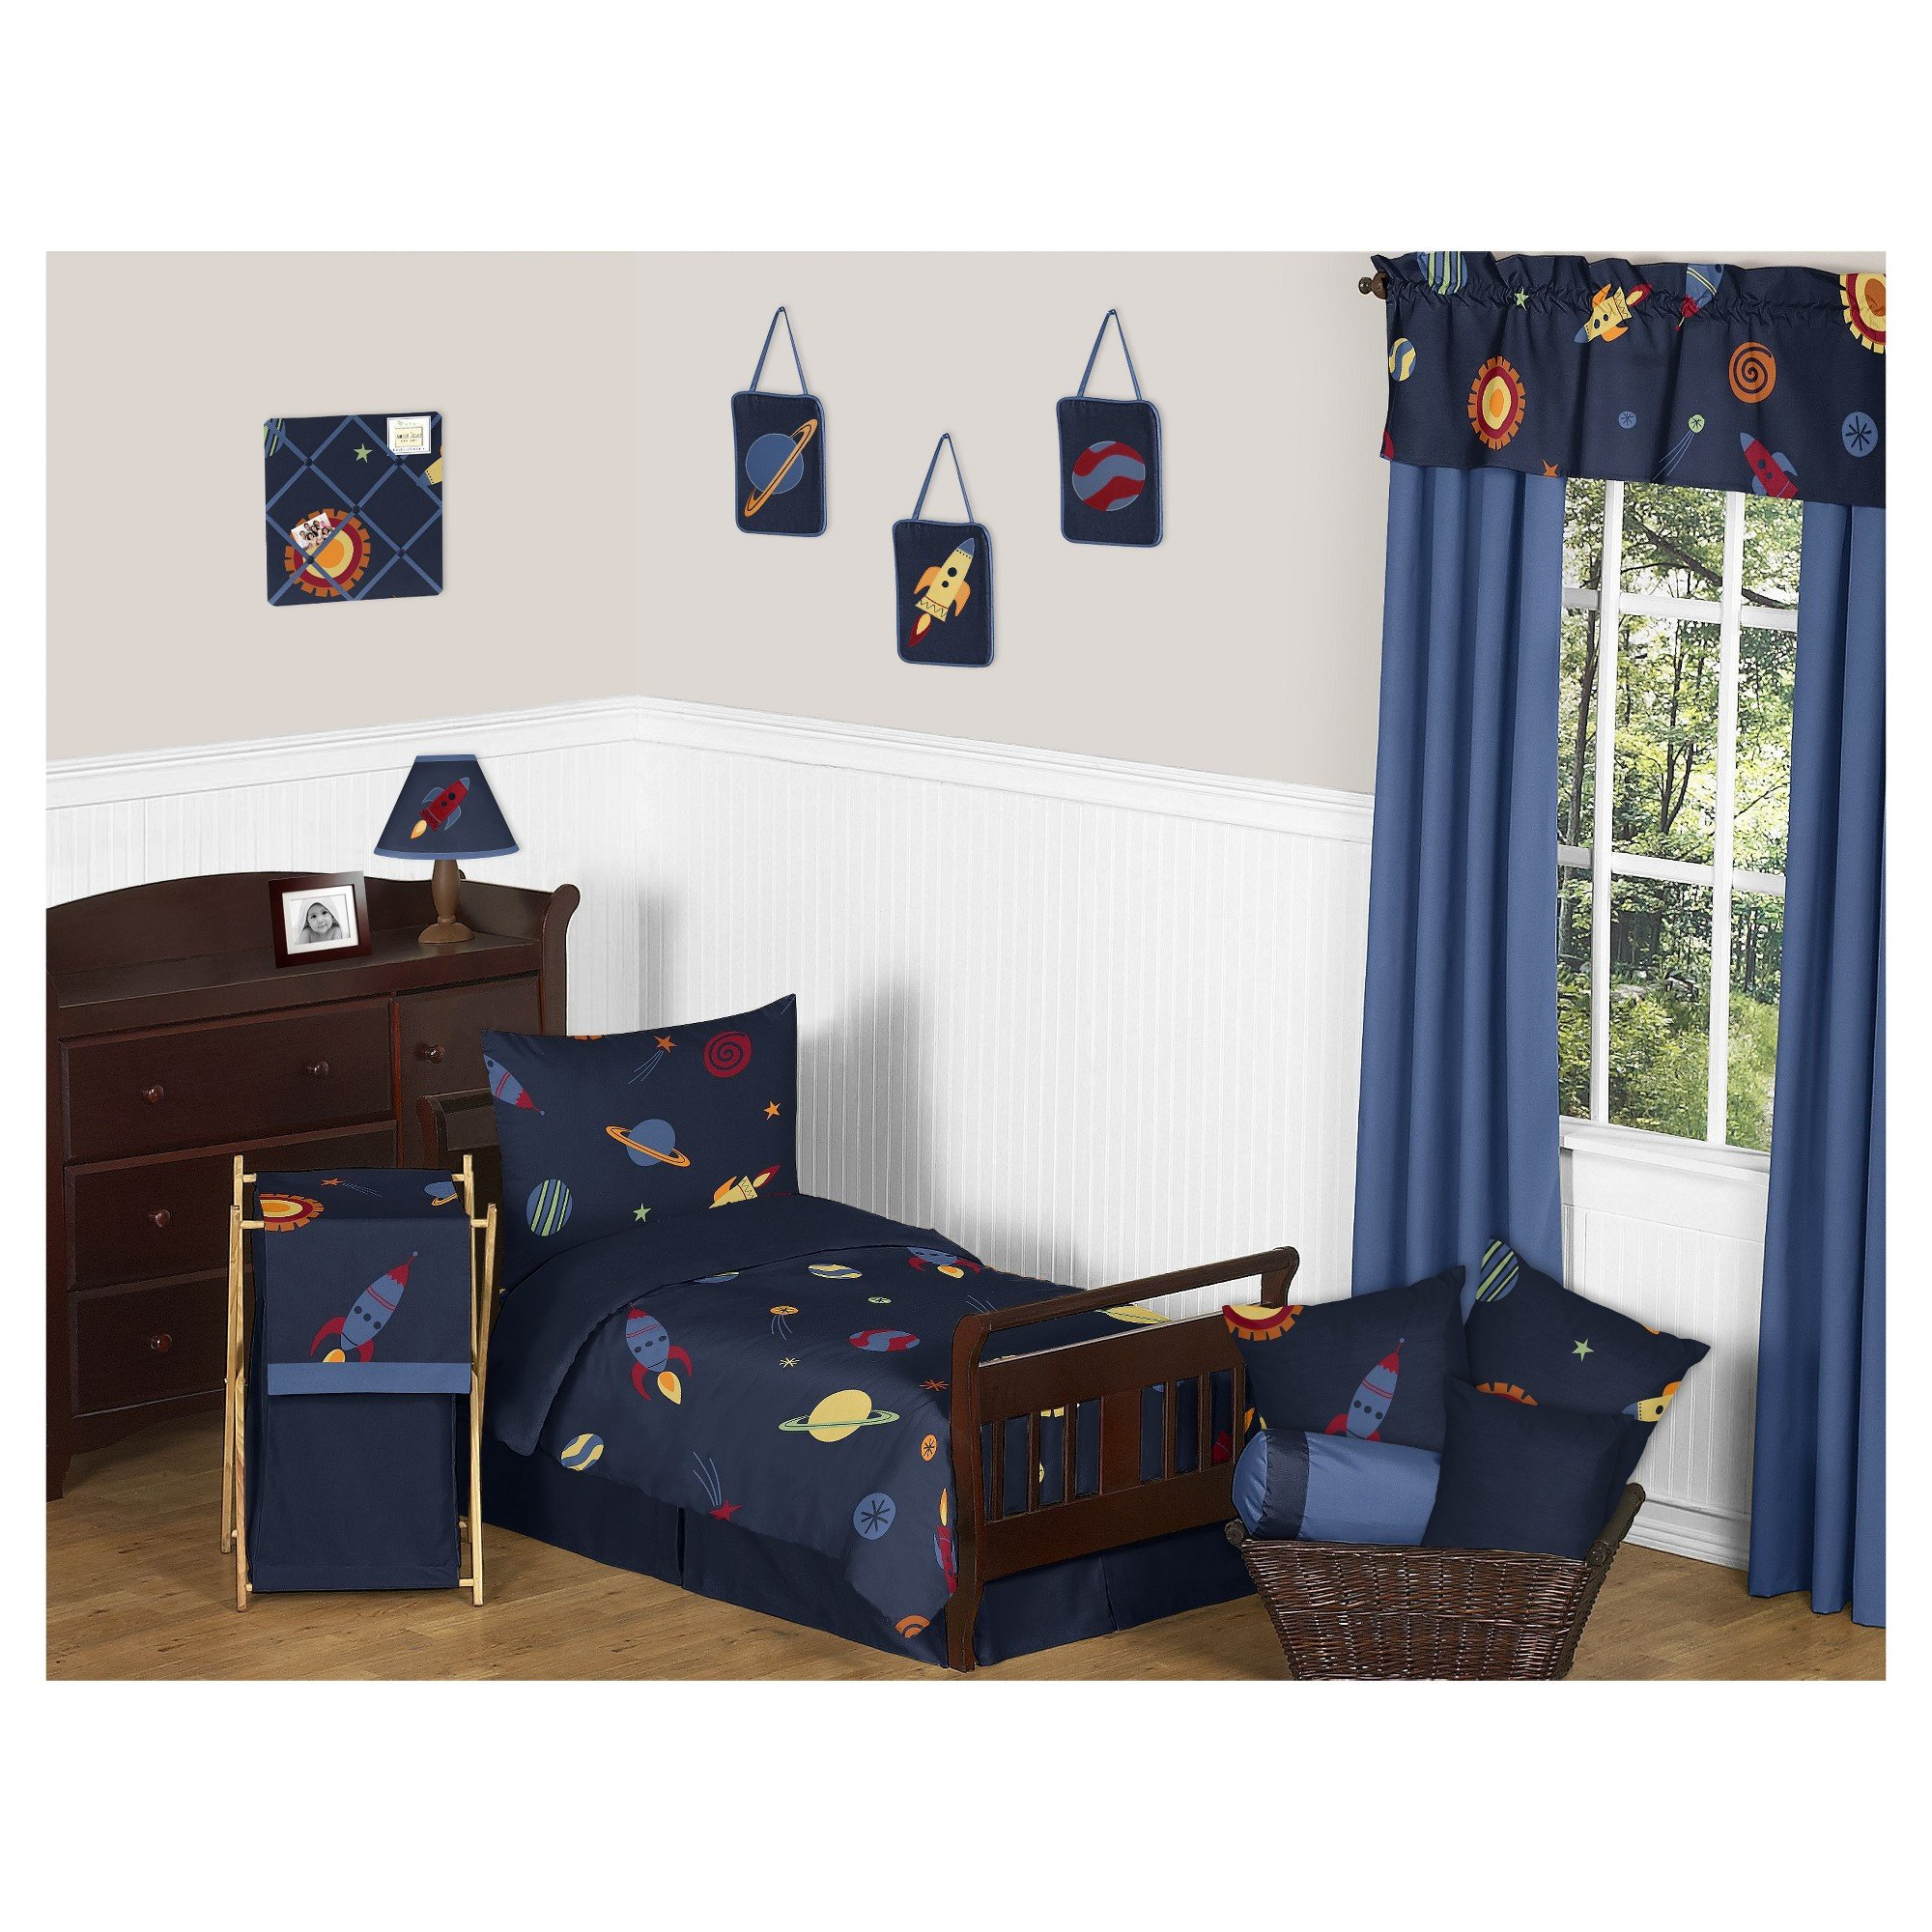 Boy Full Size Bedroom Set Awesome Navy Space Galaxy Bedding Set toddler Sweet Jojo Designs